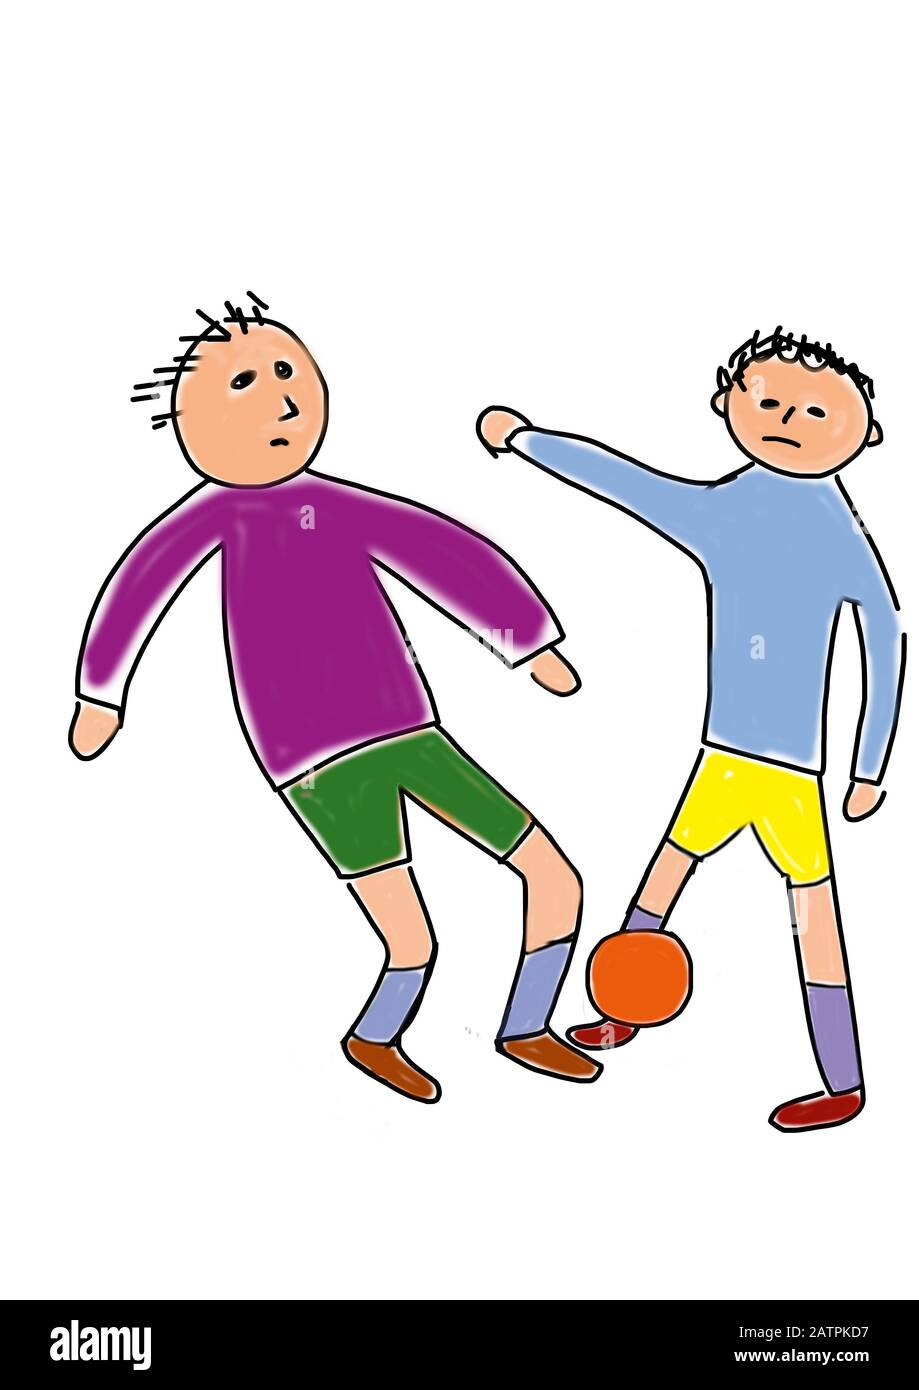 Naive illustration, children's drawing, children playing soccer, goalie, Germany Stock Photo